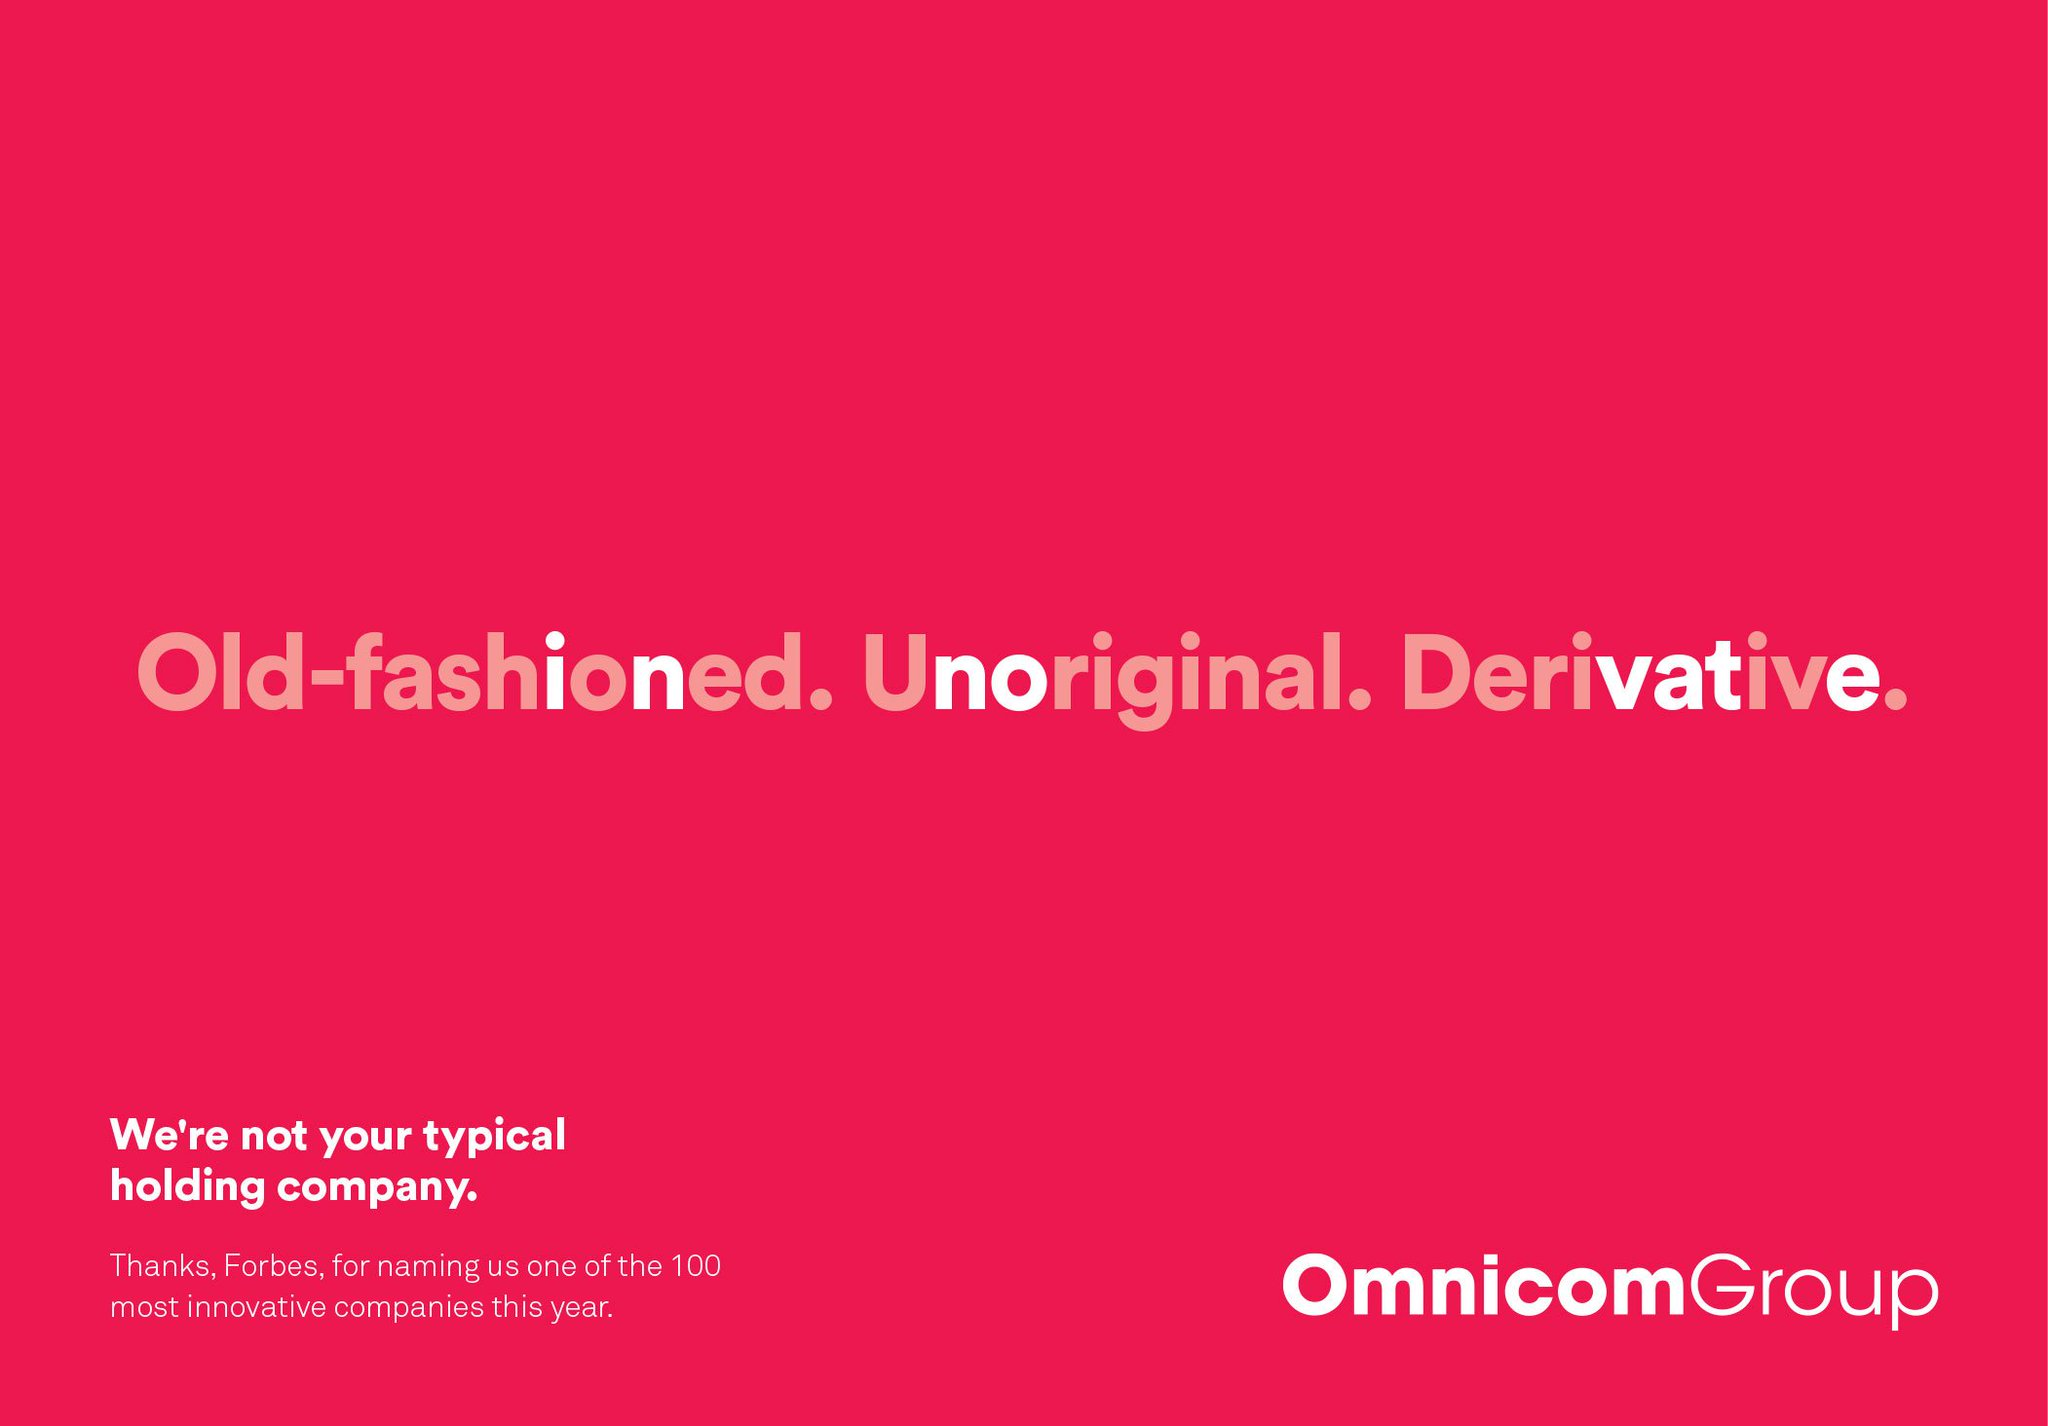 RT @OMD_Worldwide: Congratulations to our friends at @Omnicom! Proud to be part of the family! https://t.co/kUtCNJYSUa